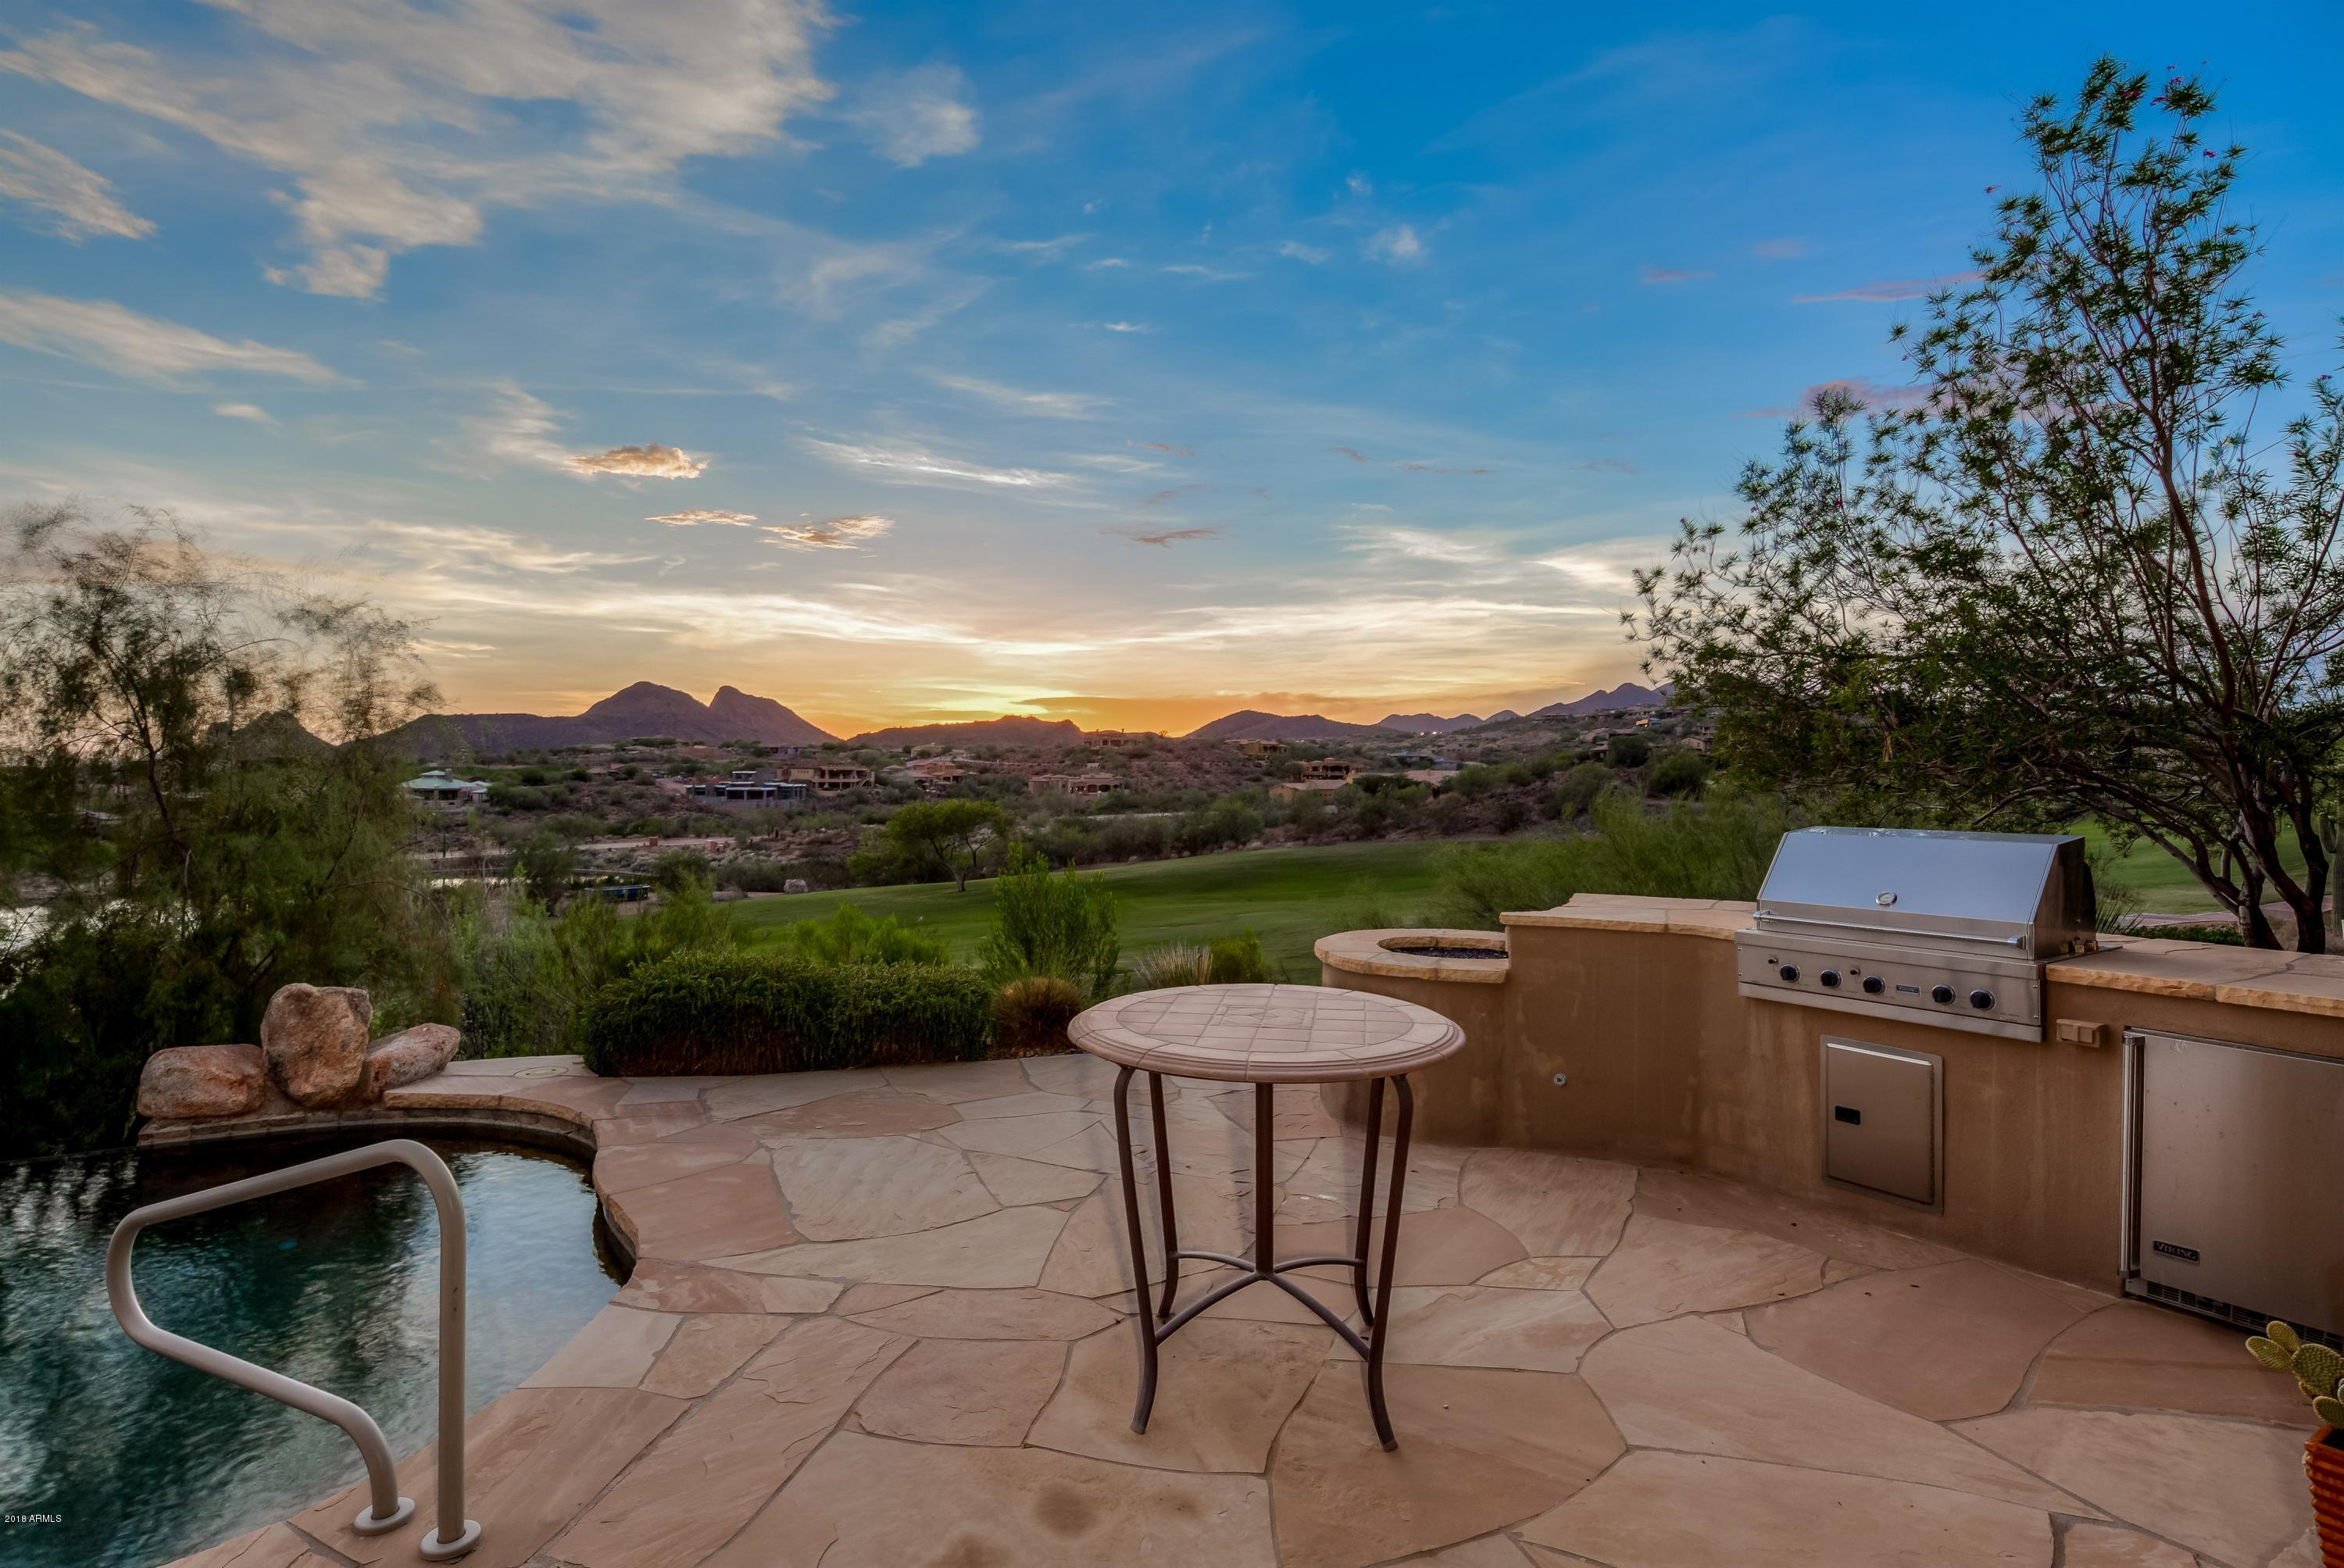 MLS 5798392 9108 N Shadow Ridge Trail --, Fountain Hills, AZ 85268 Fountain Hills AZ Eco-Friendly